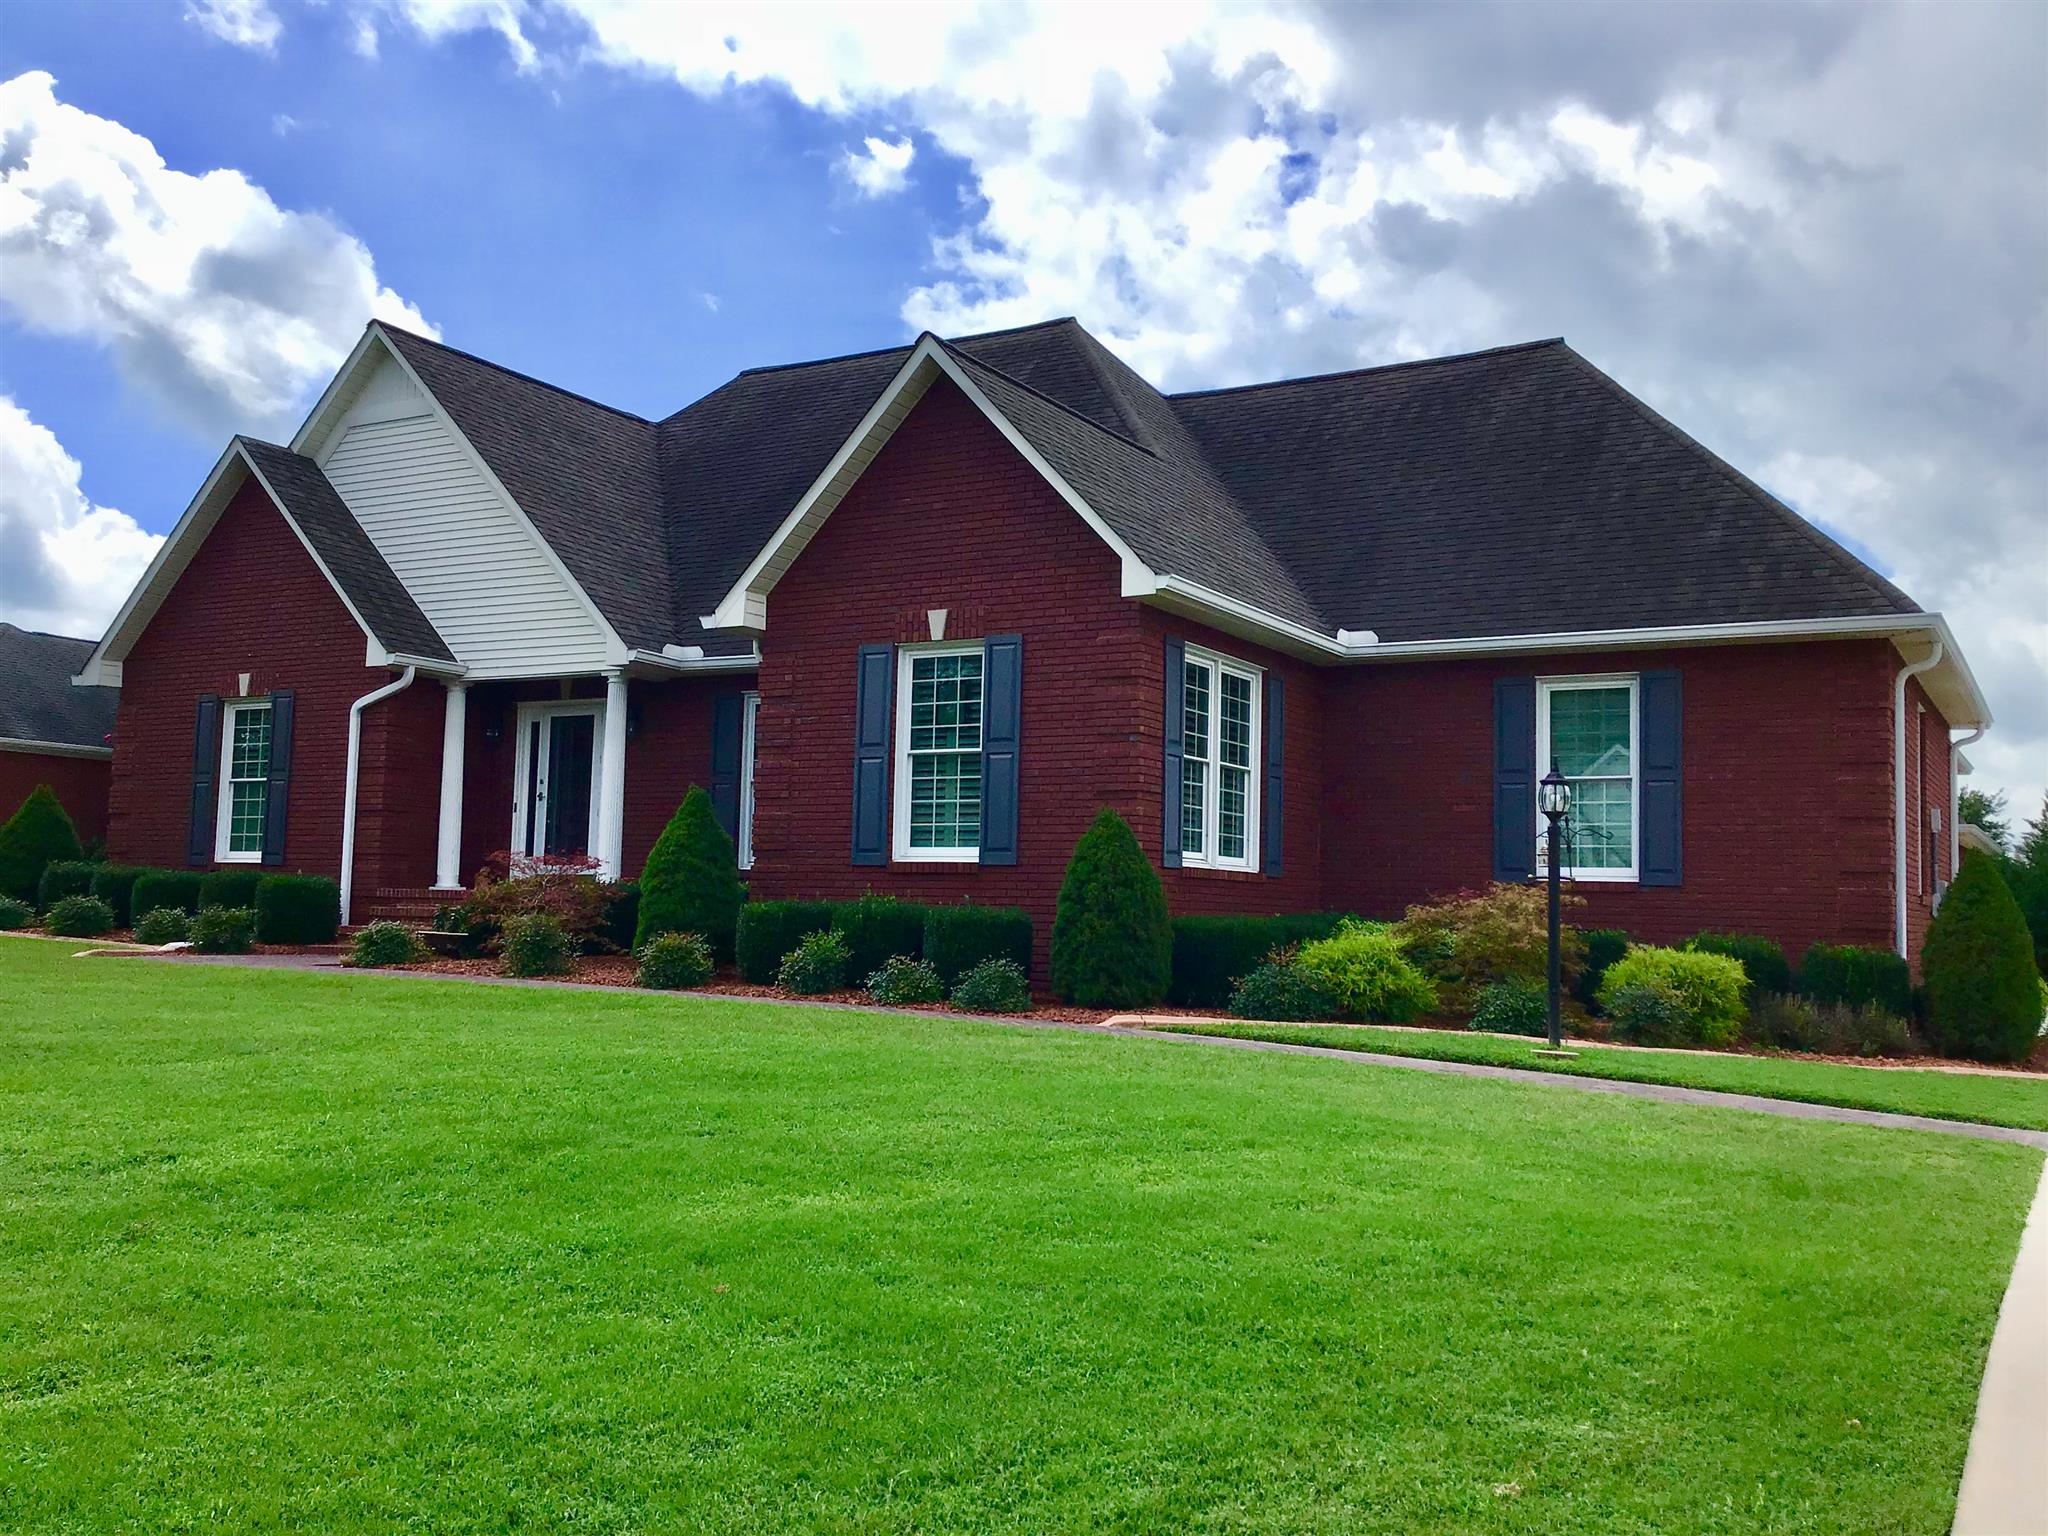 267 Beckridge Rd Mcminnville, TN 37110